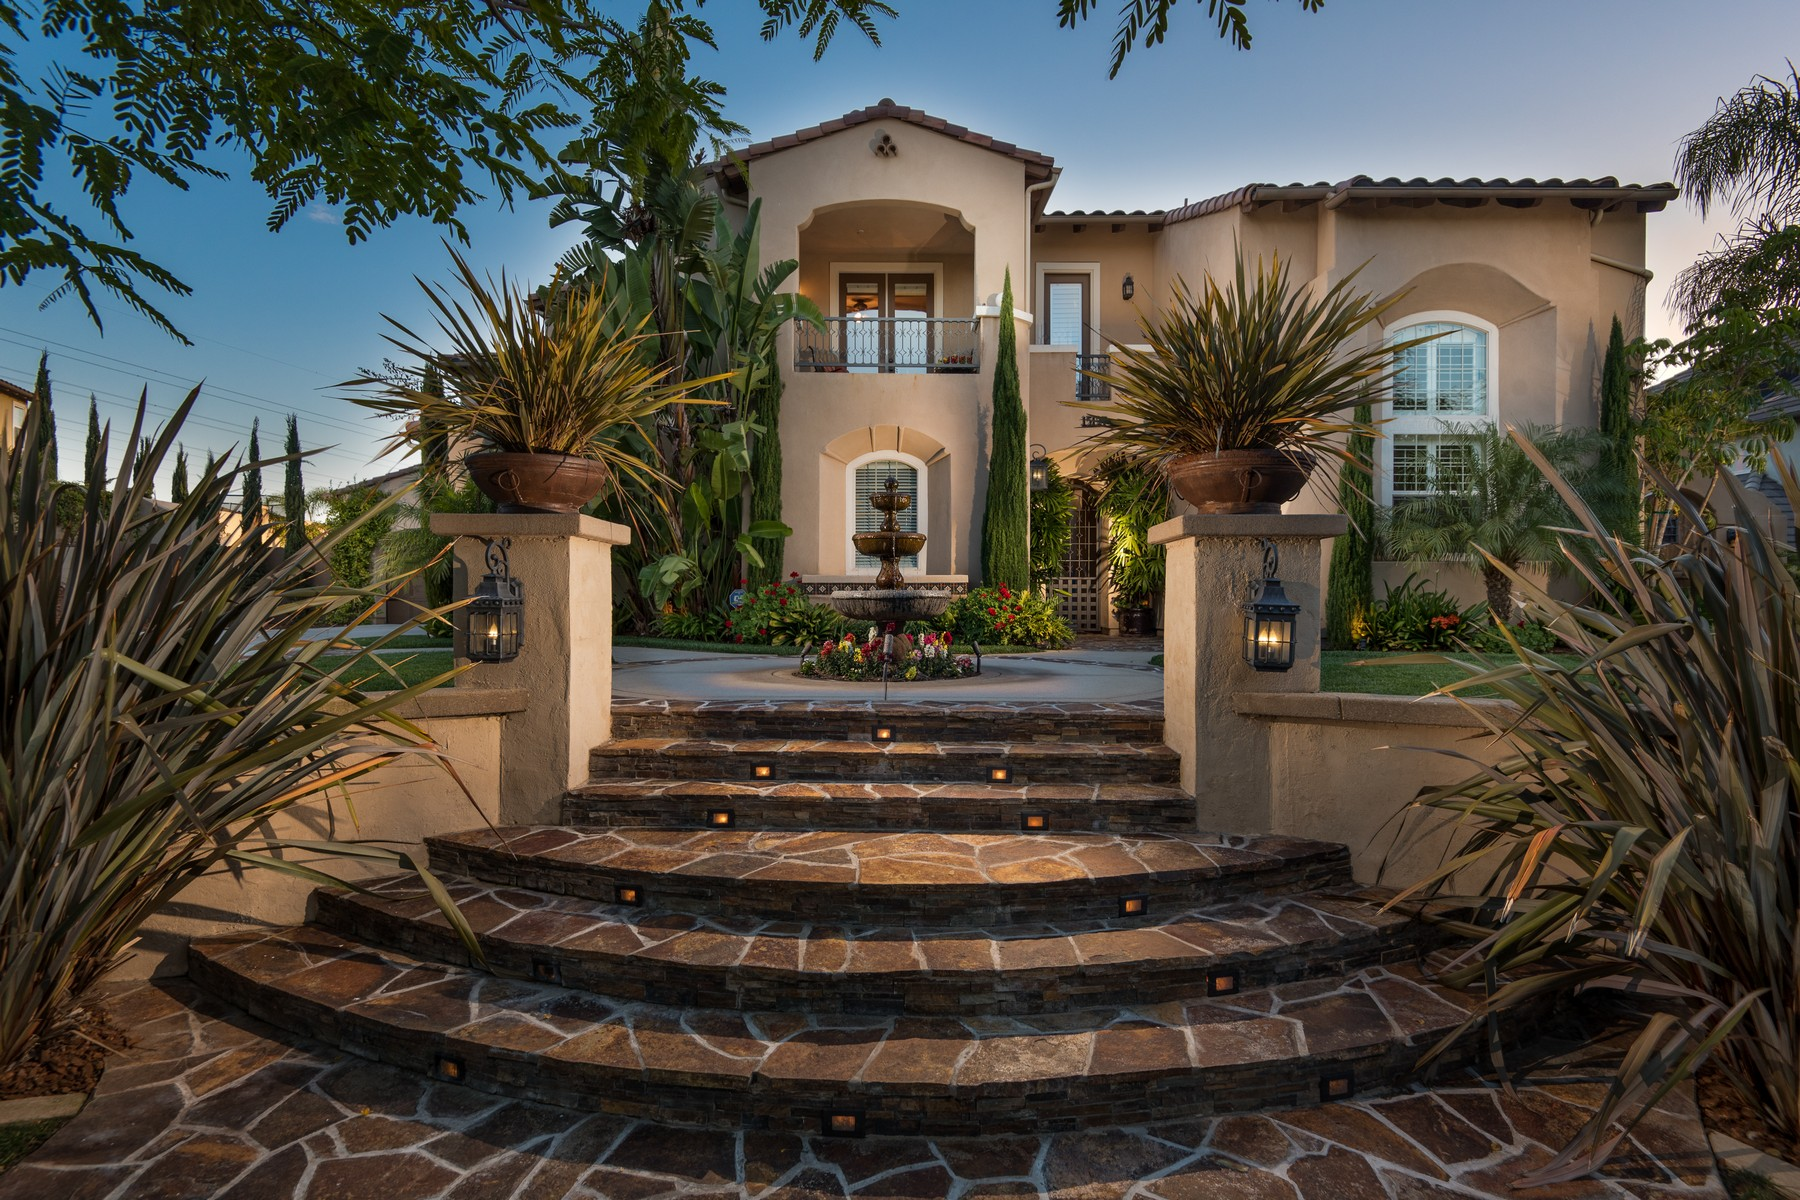 Single Family Home for Sale at 15127 Almond Orchard Ln 15127 Almond Orchard Lane, San Diego, California, 92131 United States